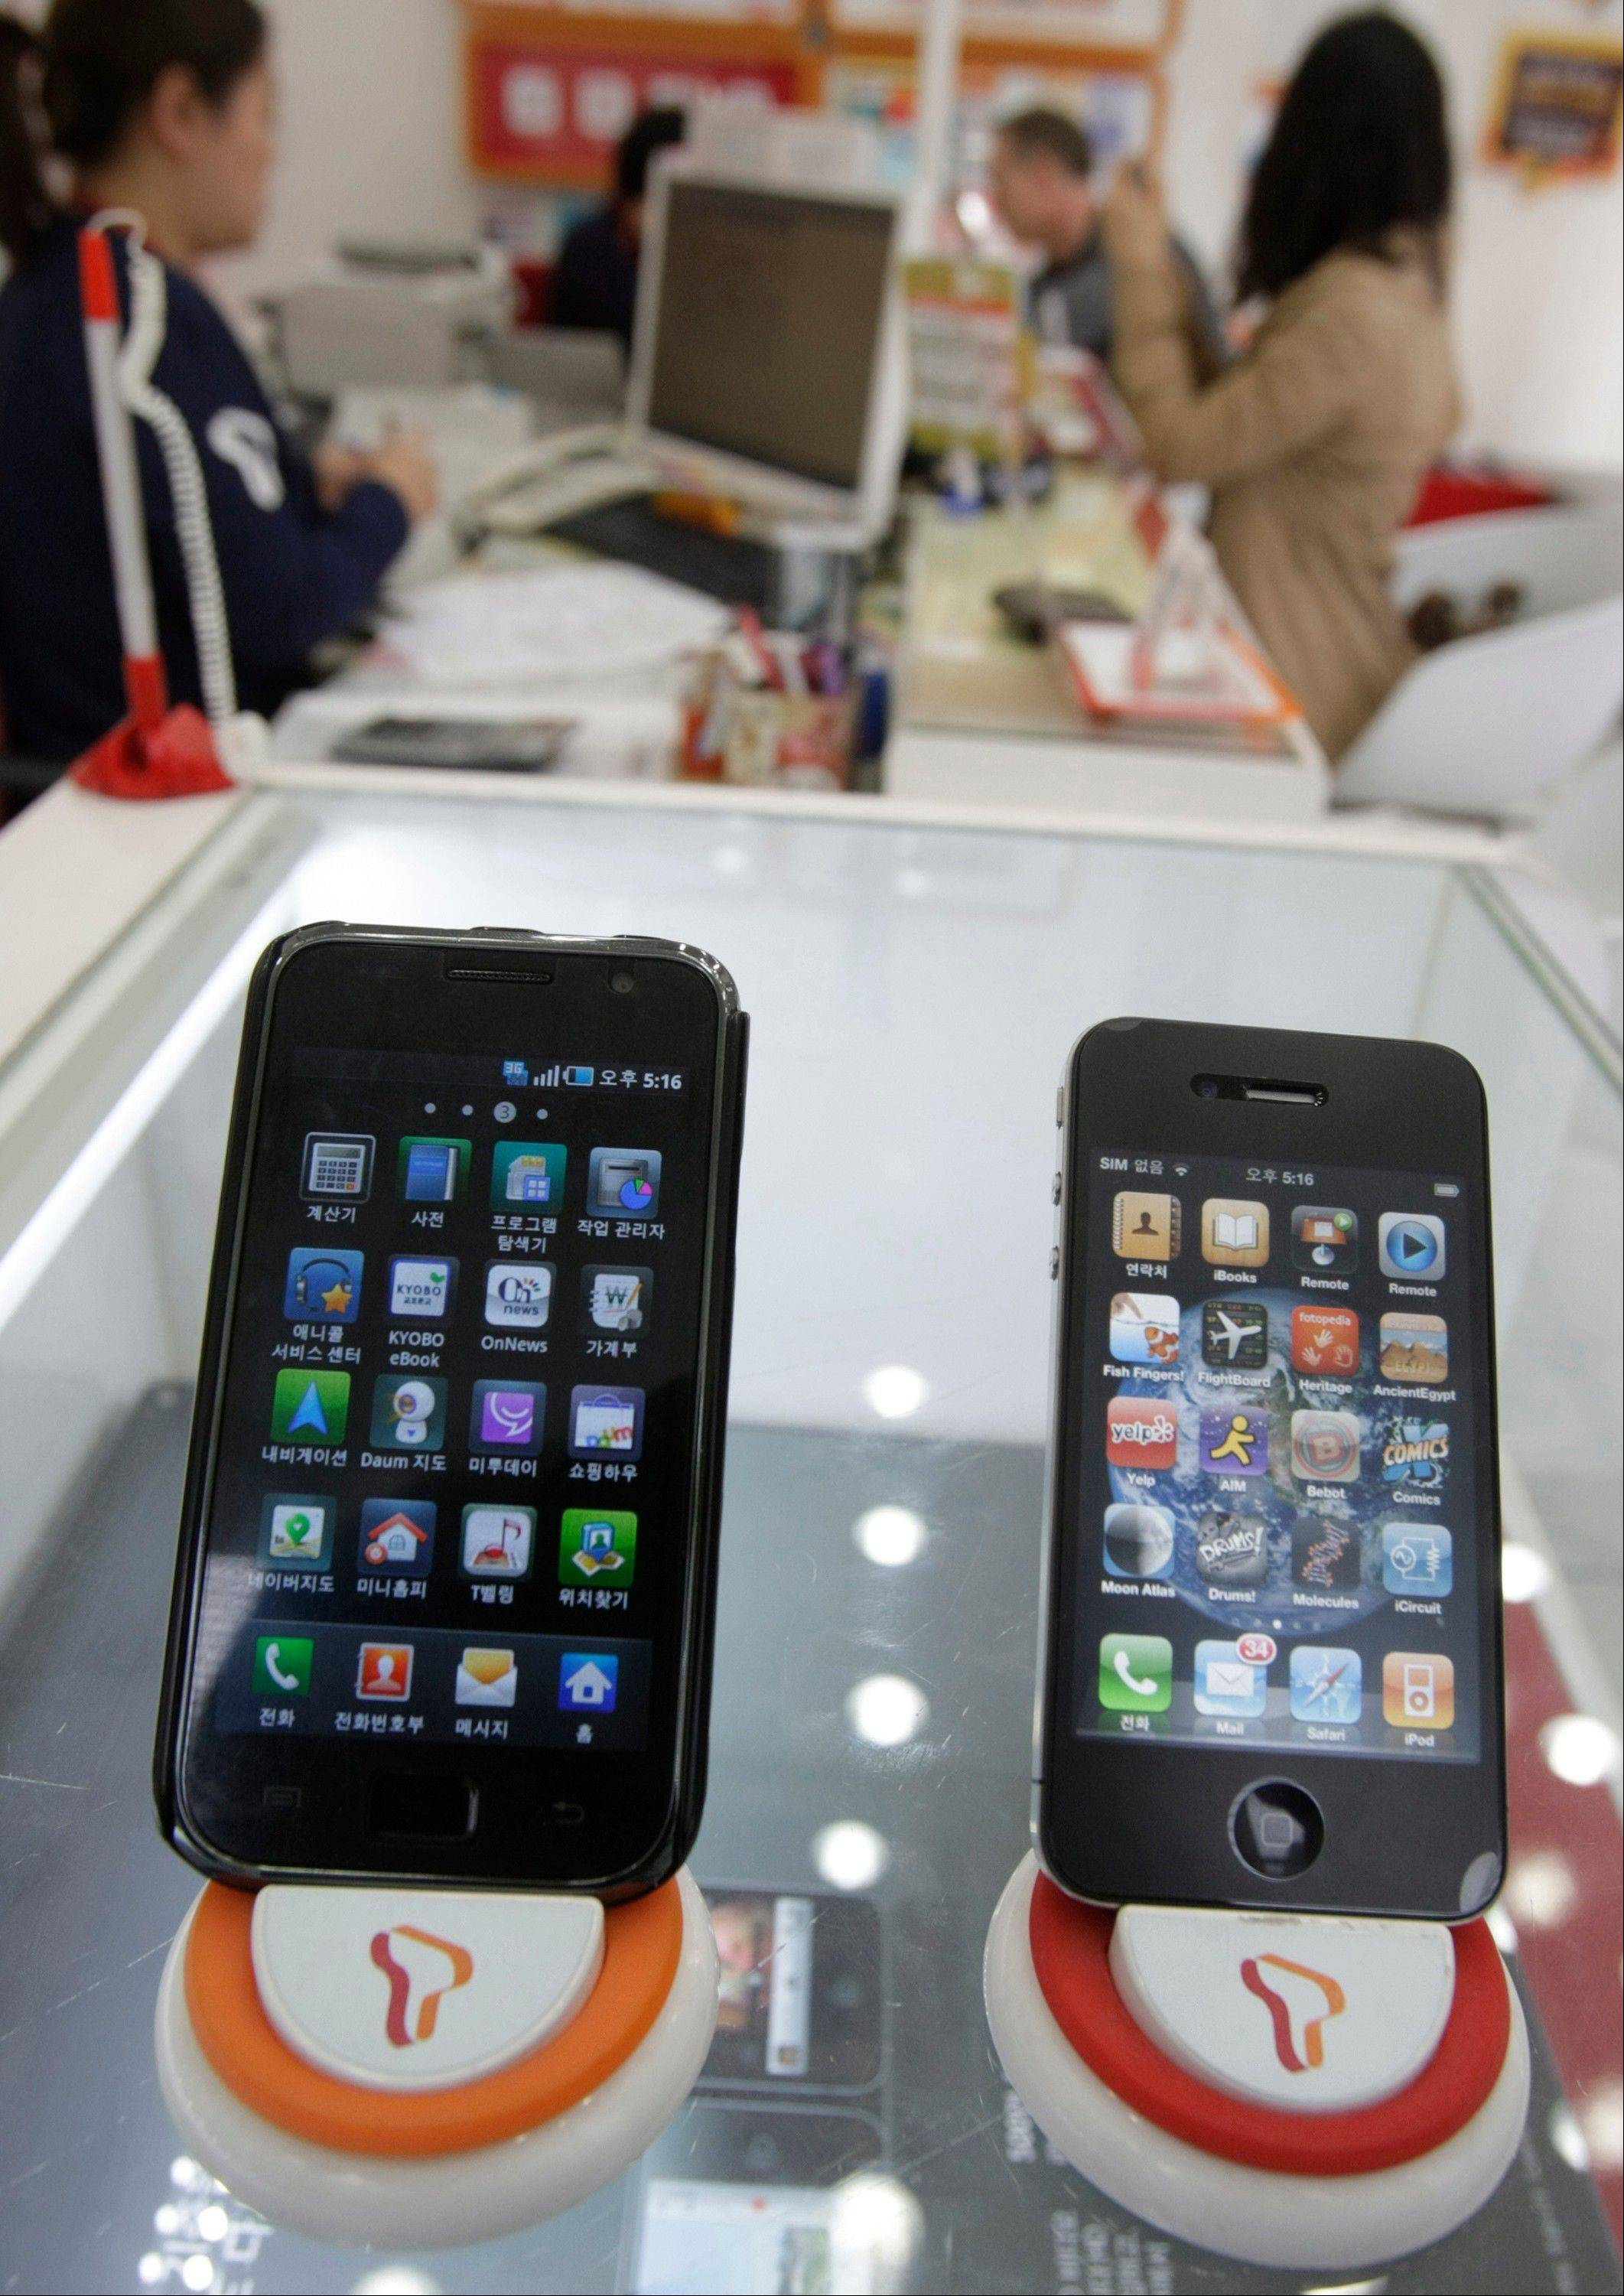 Samsung Electronics' Galaxy S, left, and Apple's iPhone 4 at a mobile phone shop in Seoul, South Korea. Jury deliberations were scheduled to begin Wednesday in the multibillion-dollar patent trial involving the world's biggest smartphone companies.